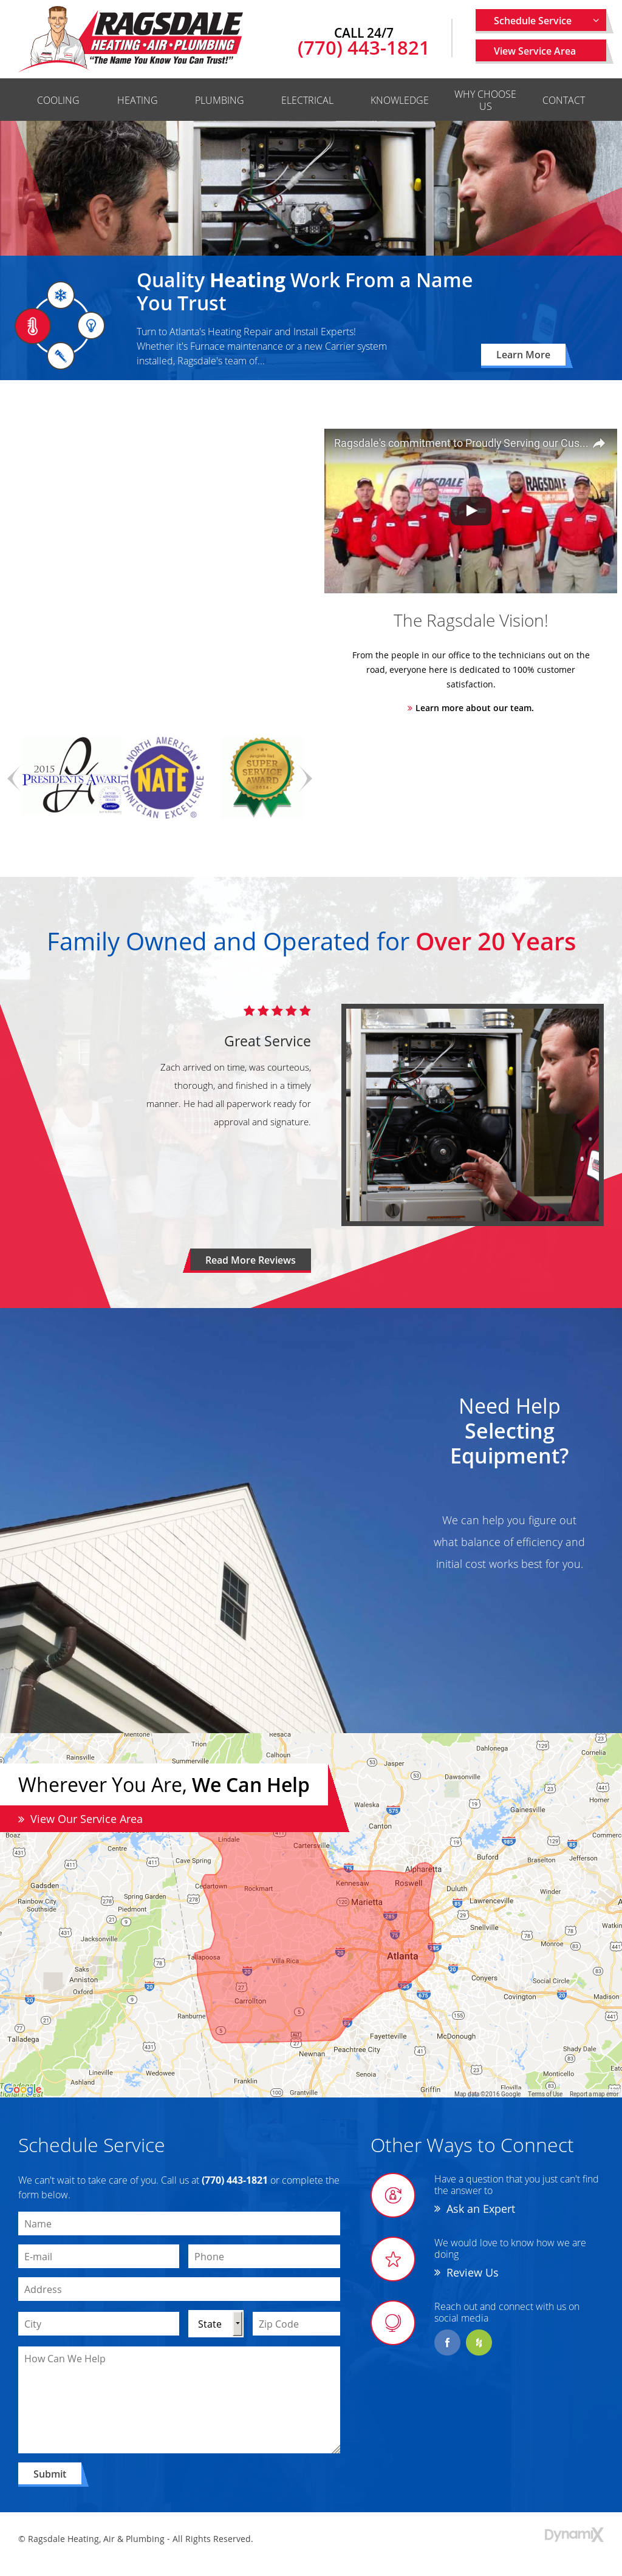 Ragsdale Heating Air Conditioning Website History